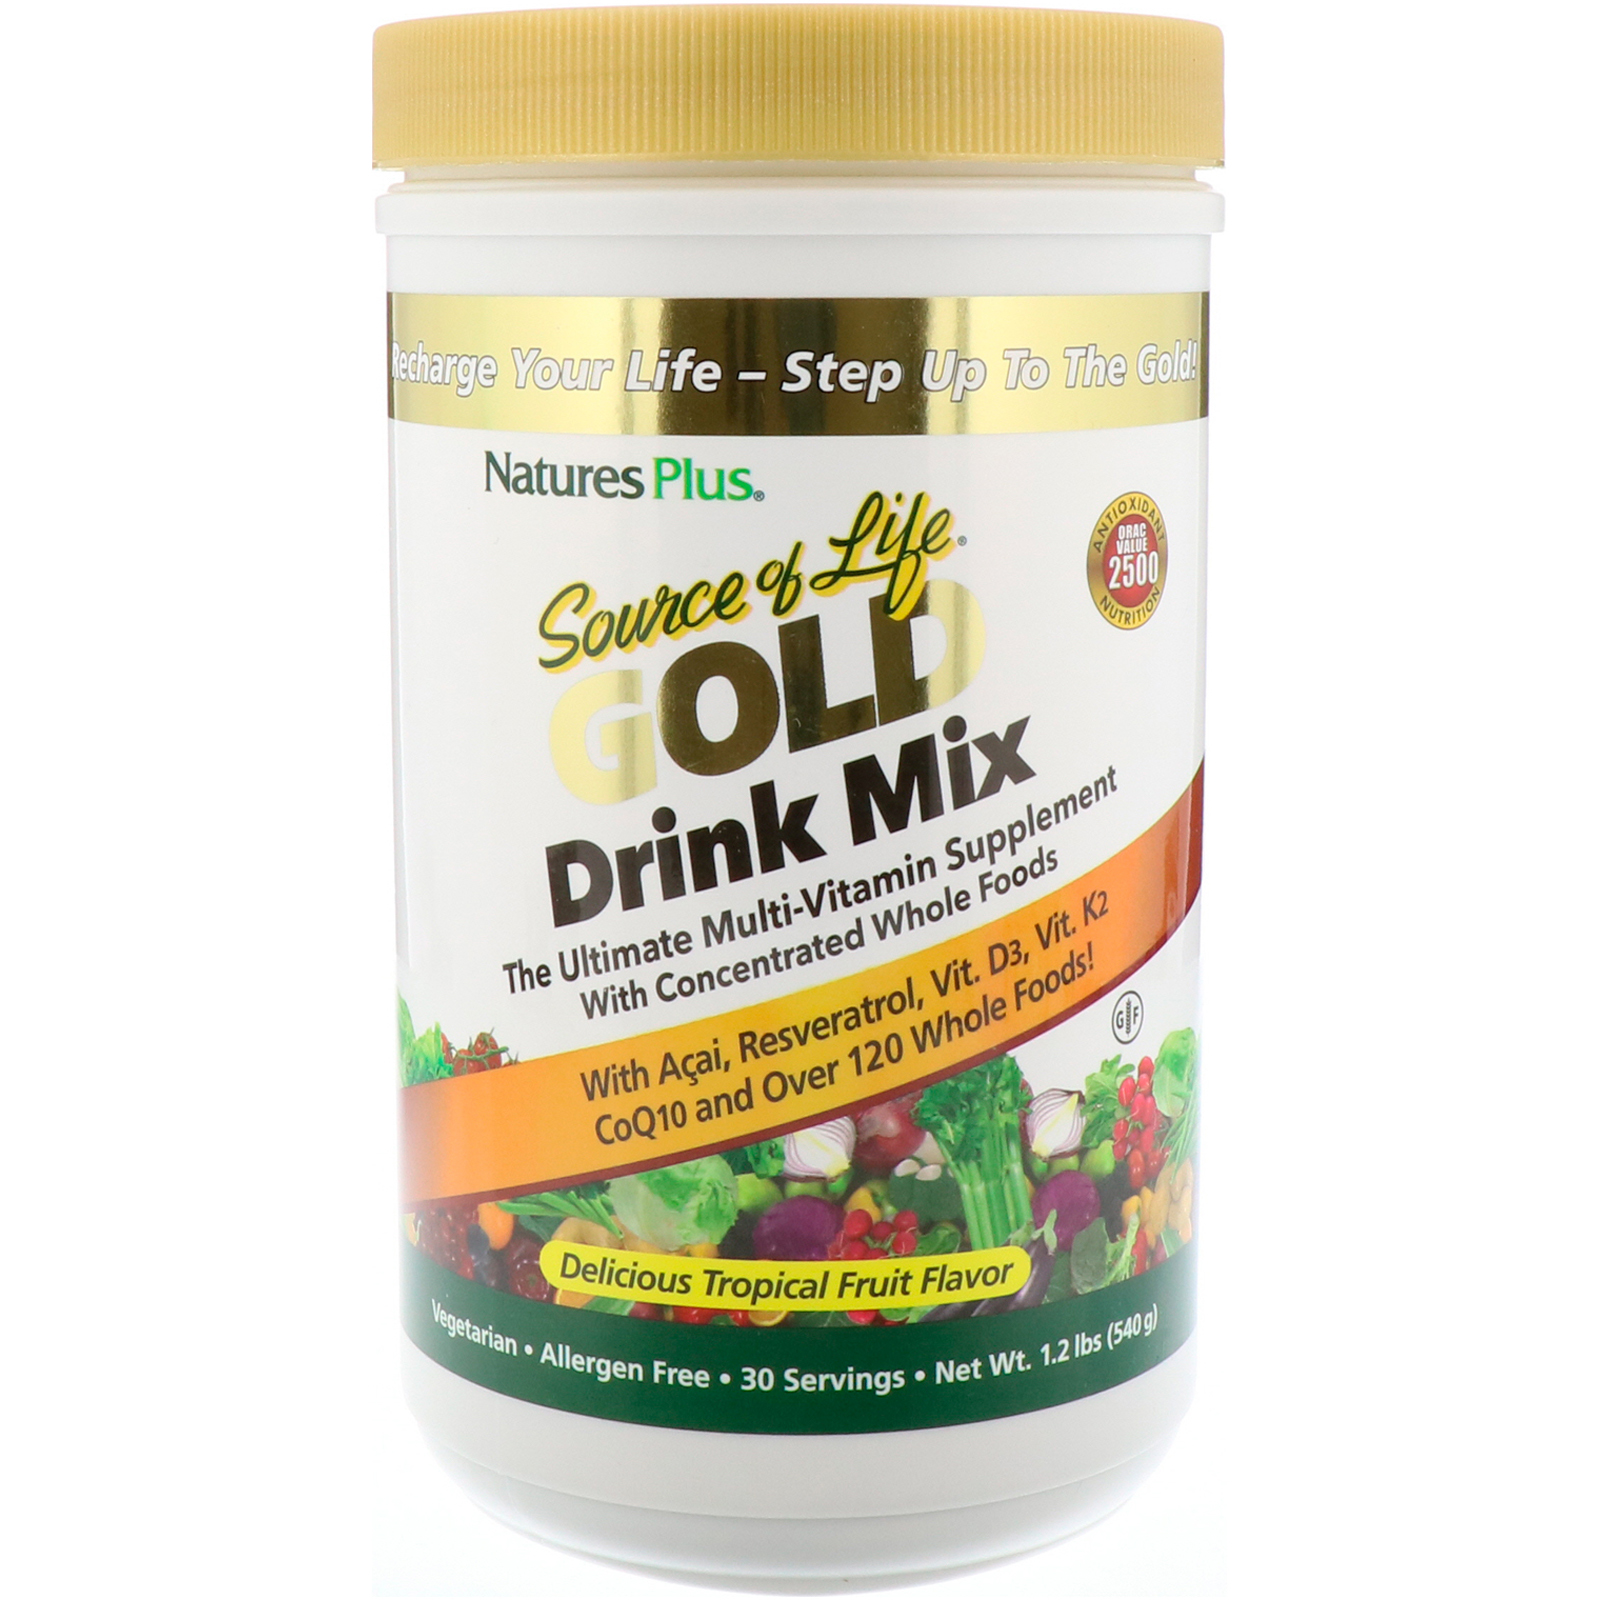 Nature's Plus, Source Of Life Gold Drink Mix, Delicious